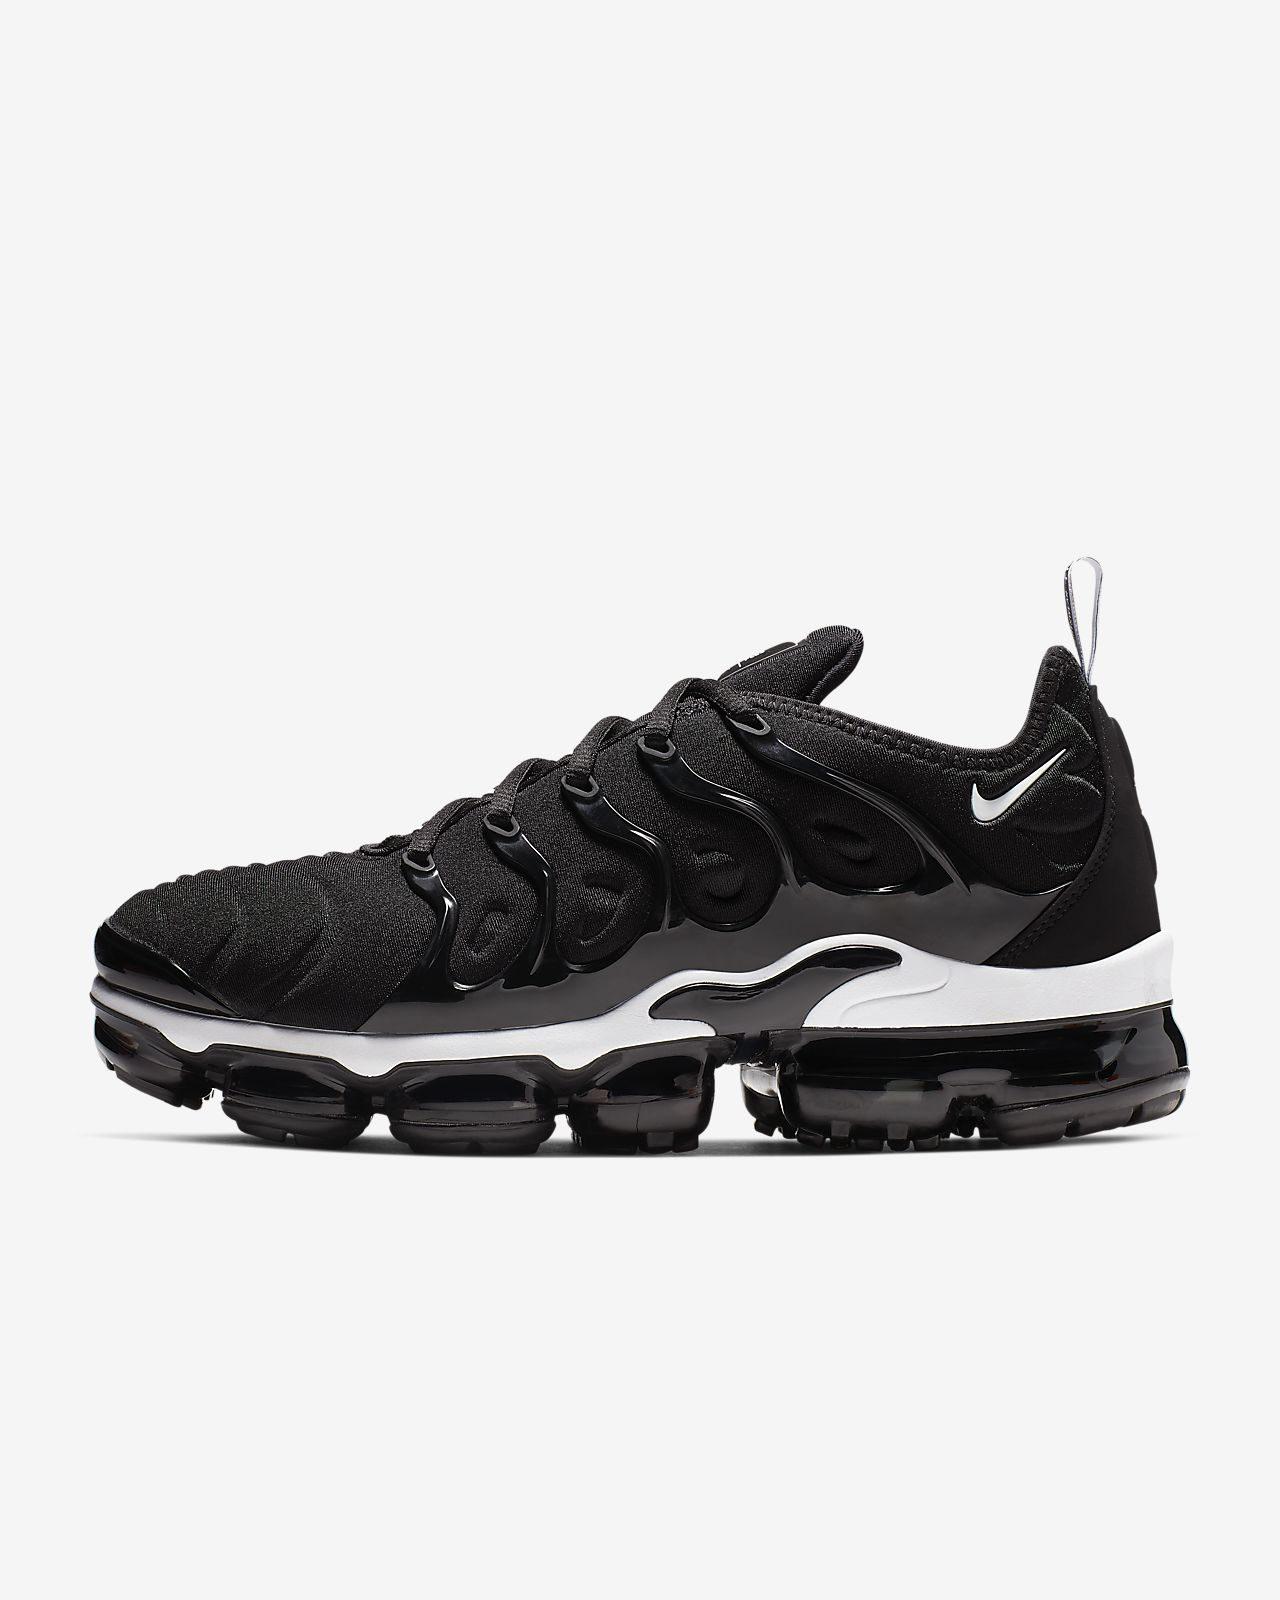 96e715d2fb71a Nike Air VaporMax Plus Men s Shoe. Nike.com GB